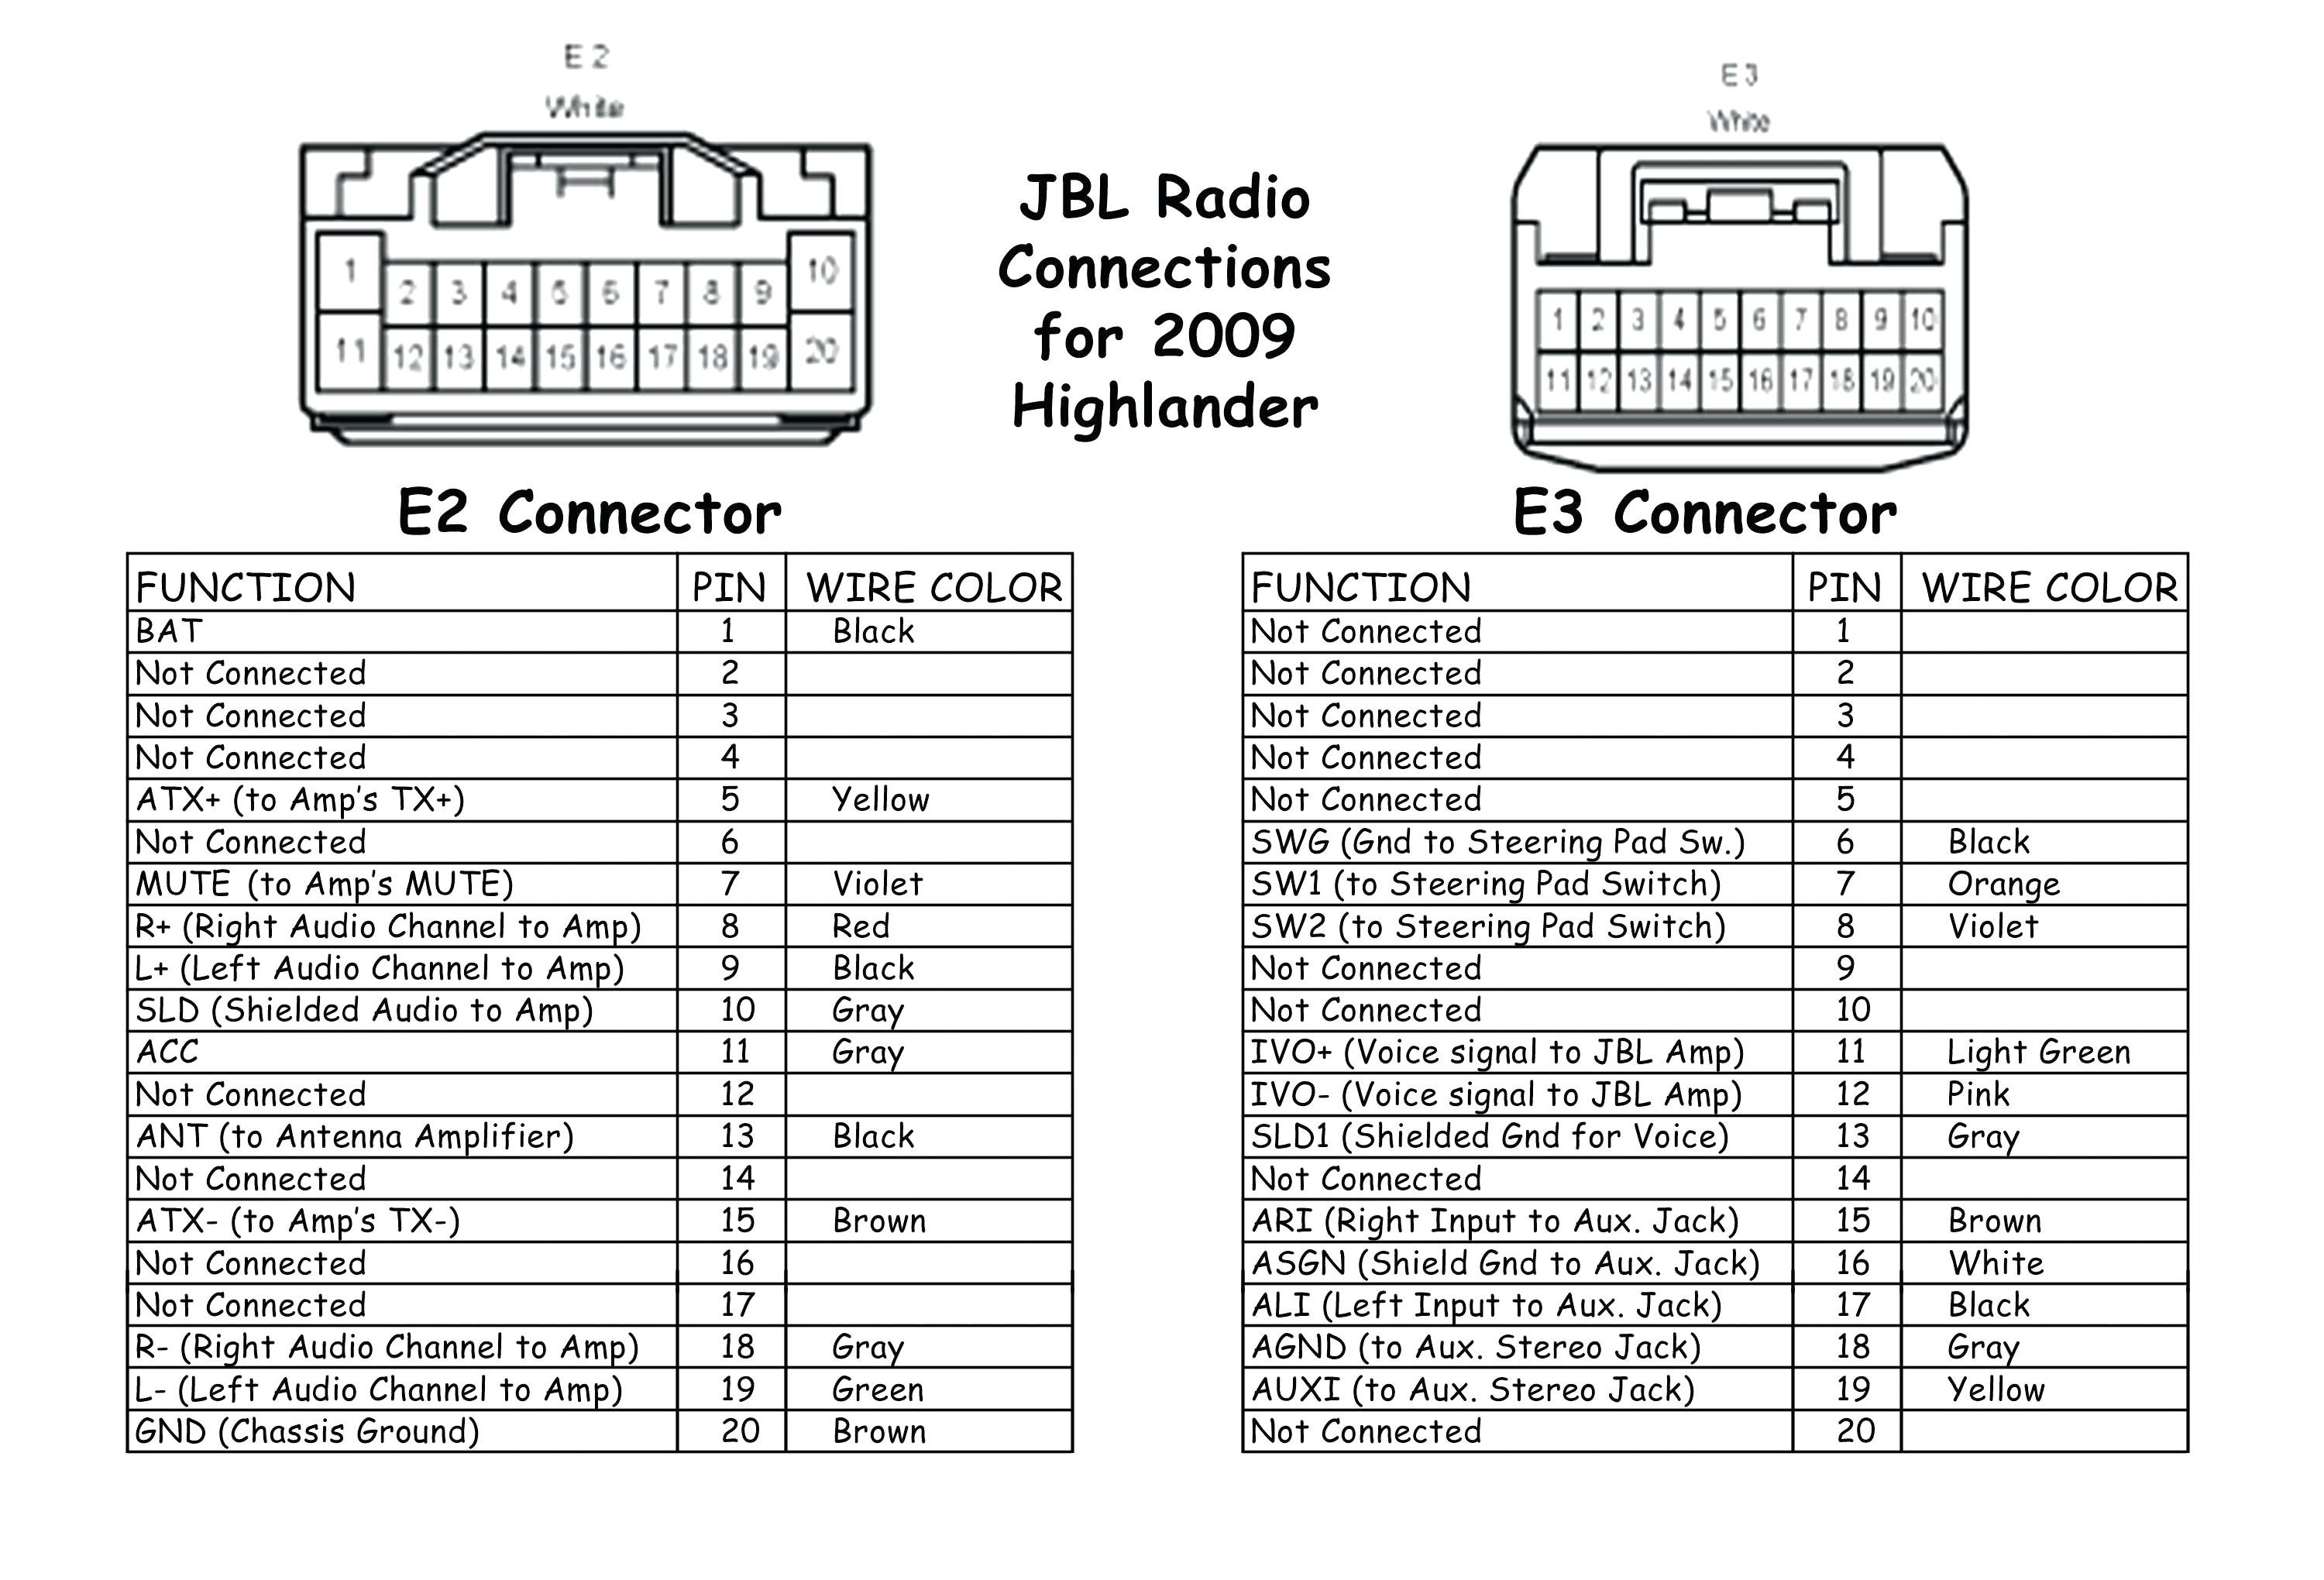 12 Good Bazooka Bass Tube Wiring Diagram For You | Pioneer car stereo, Car  stereo, Electrical wiring diagram | Bazooka Stereo Wiring Diagram |  | Pinterest